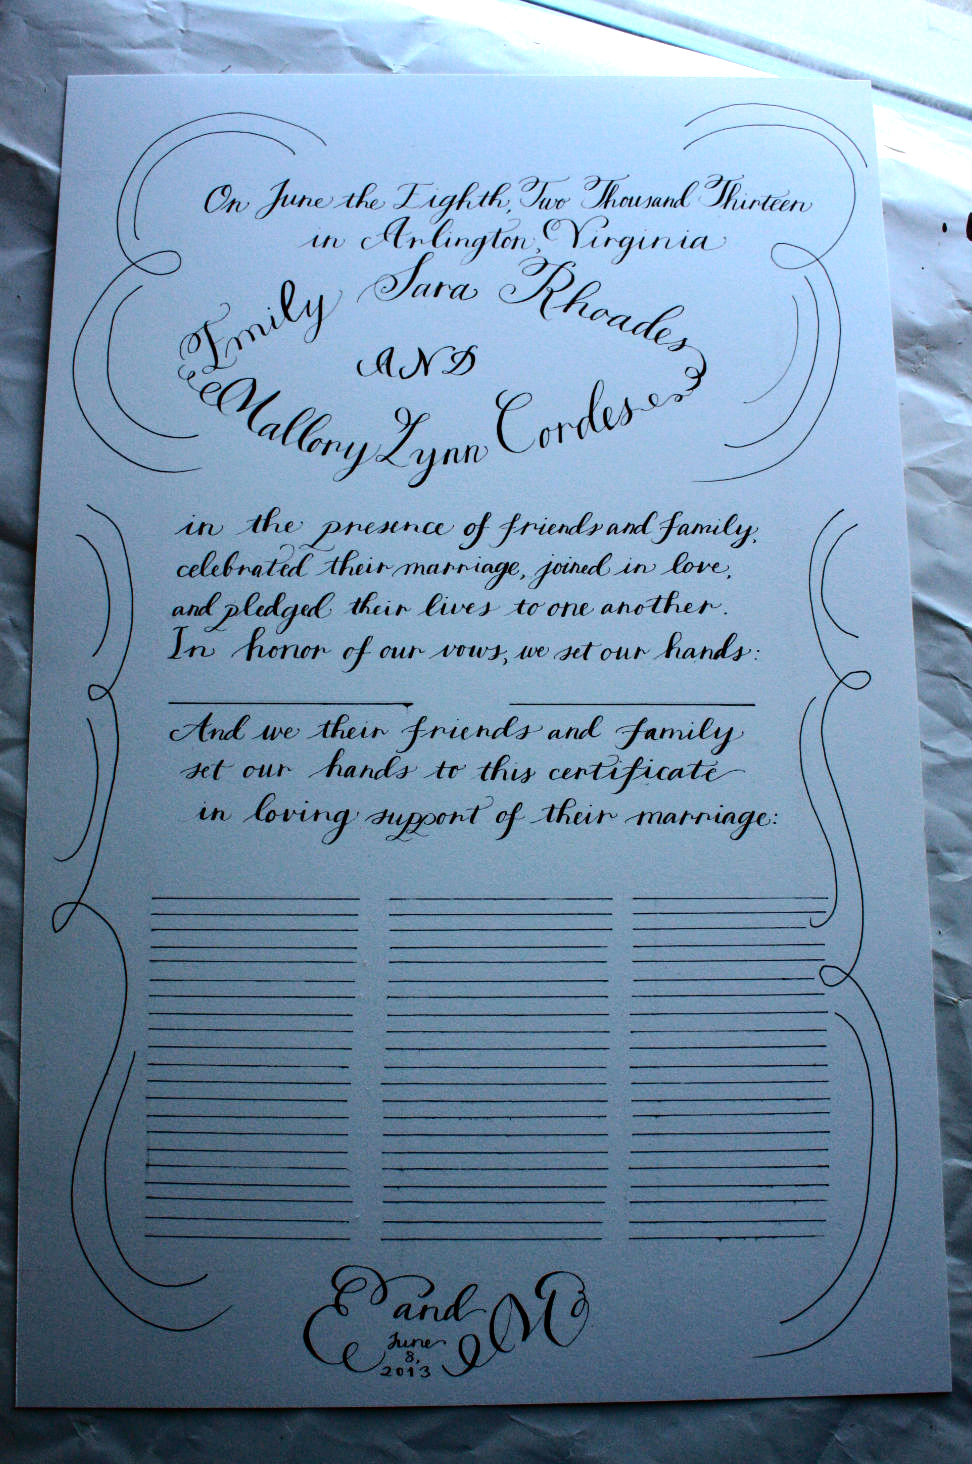 Quaker Wedding Certificate For Emily And Mallory Bluestocking